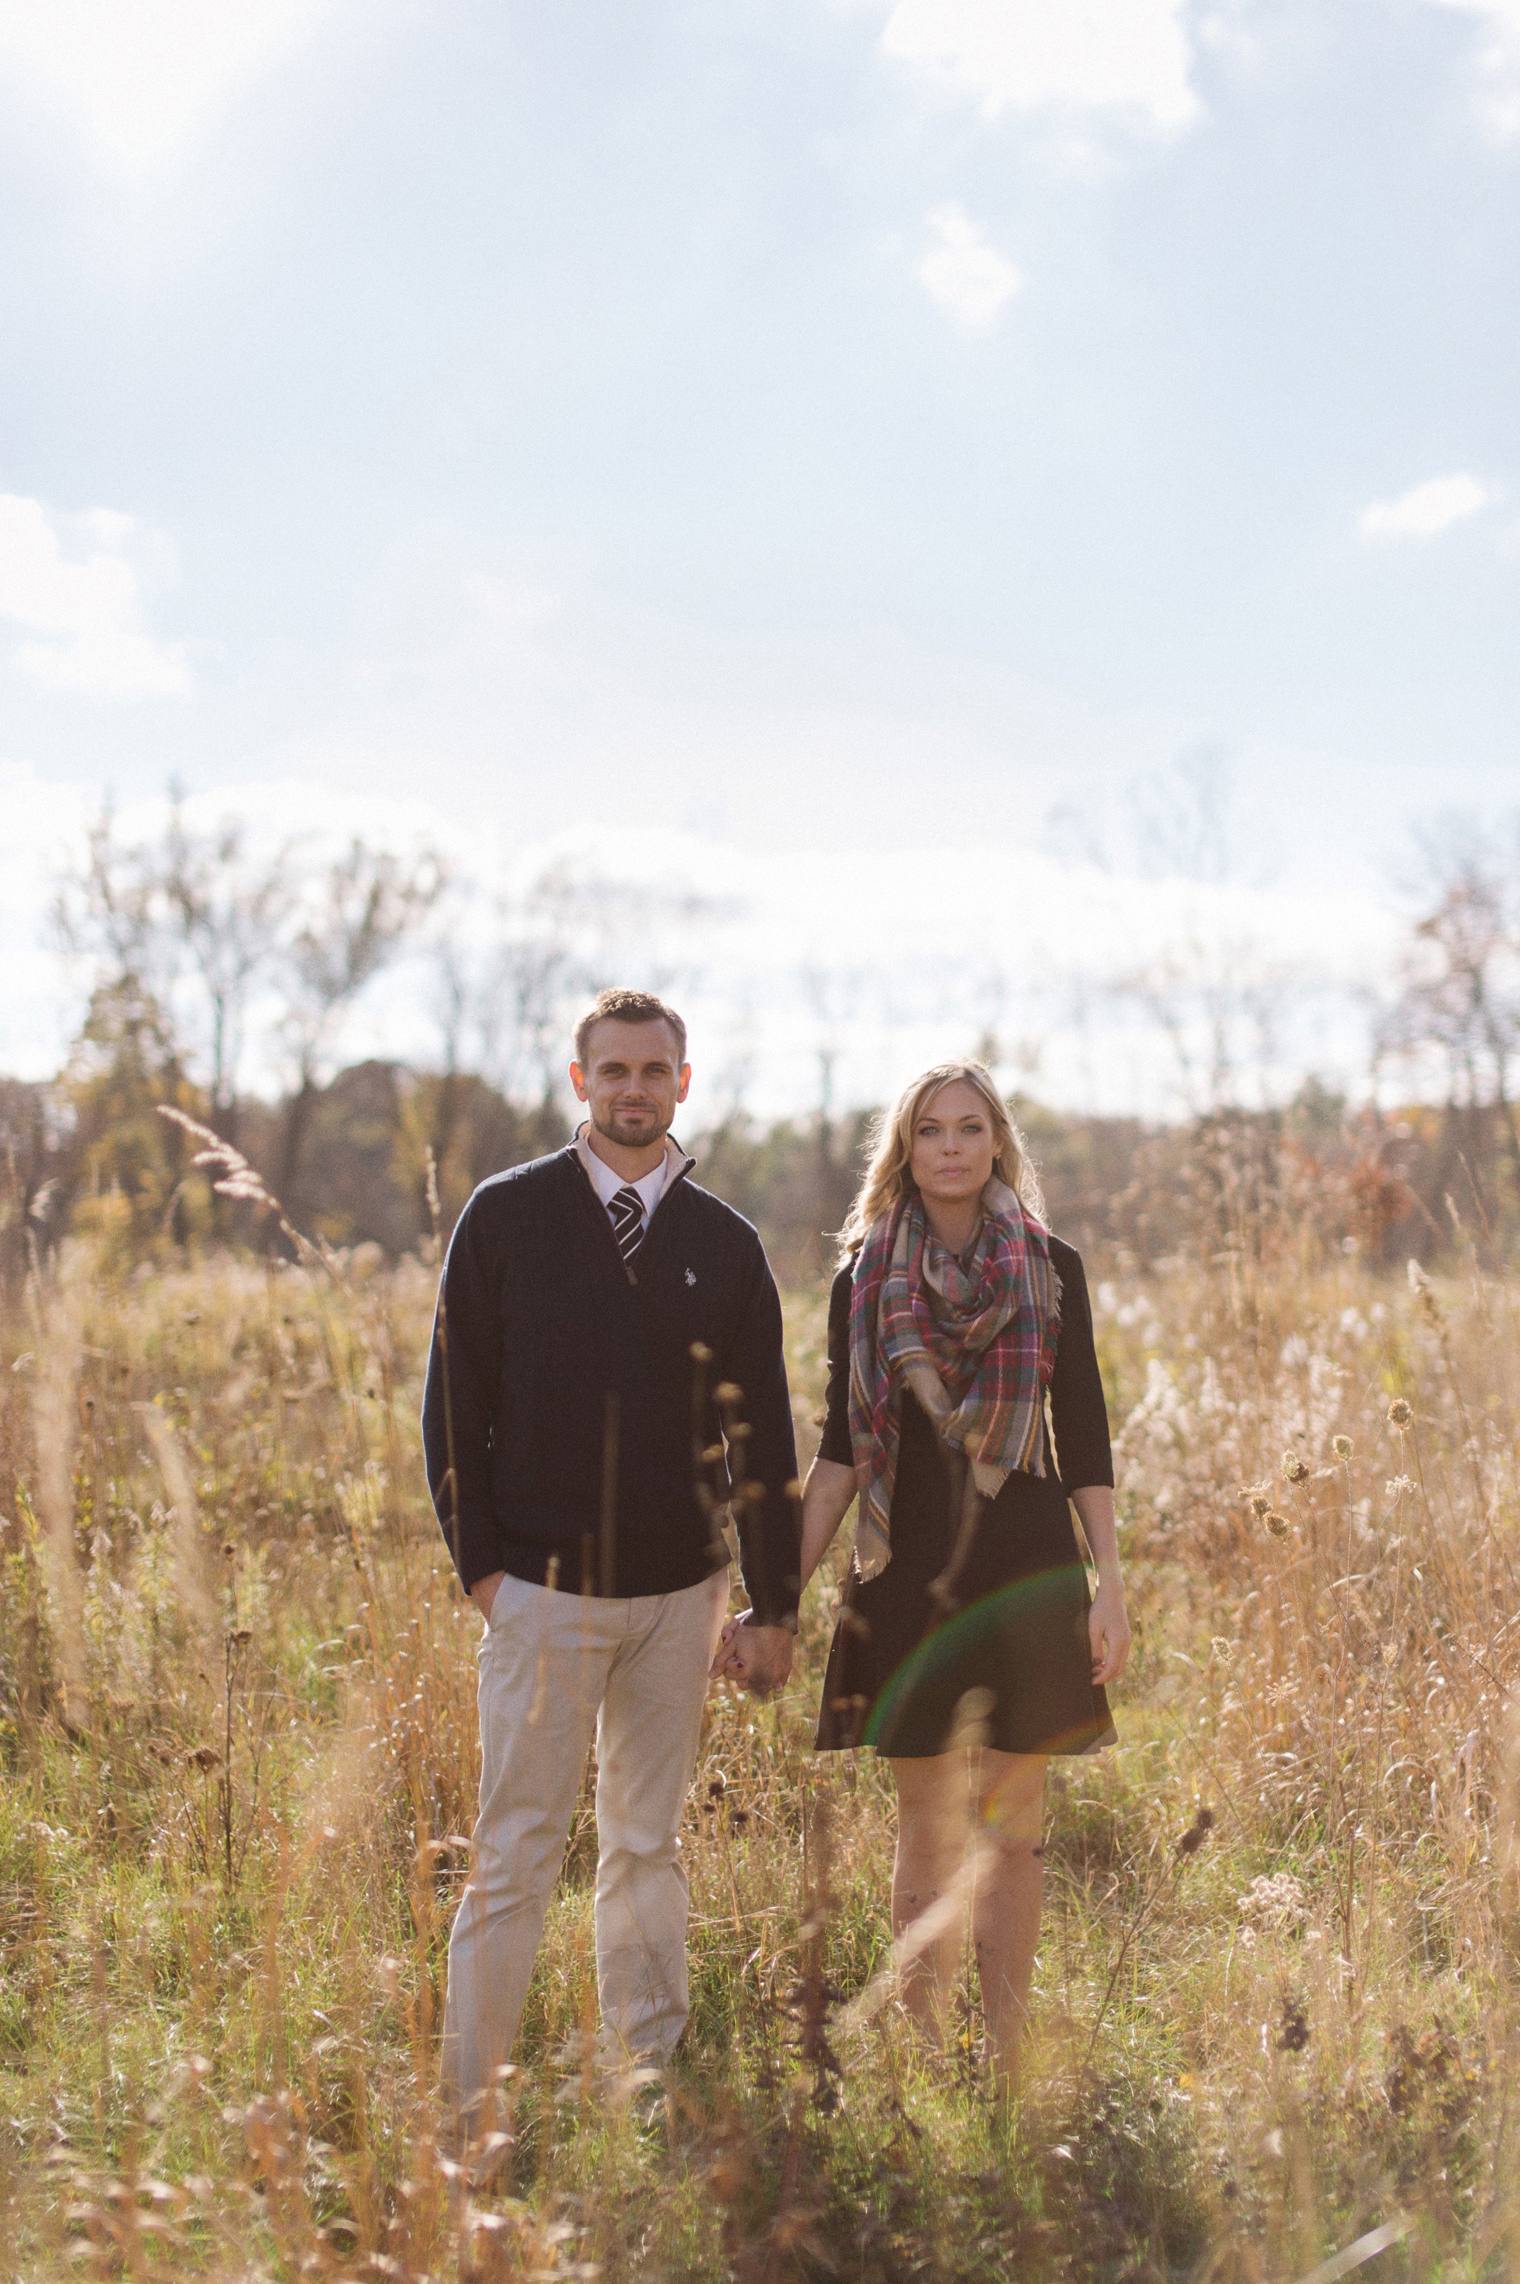 Fall couples photography session at the Ann Arbor Botanical Gardens.